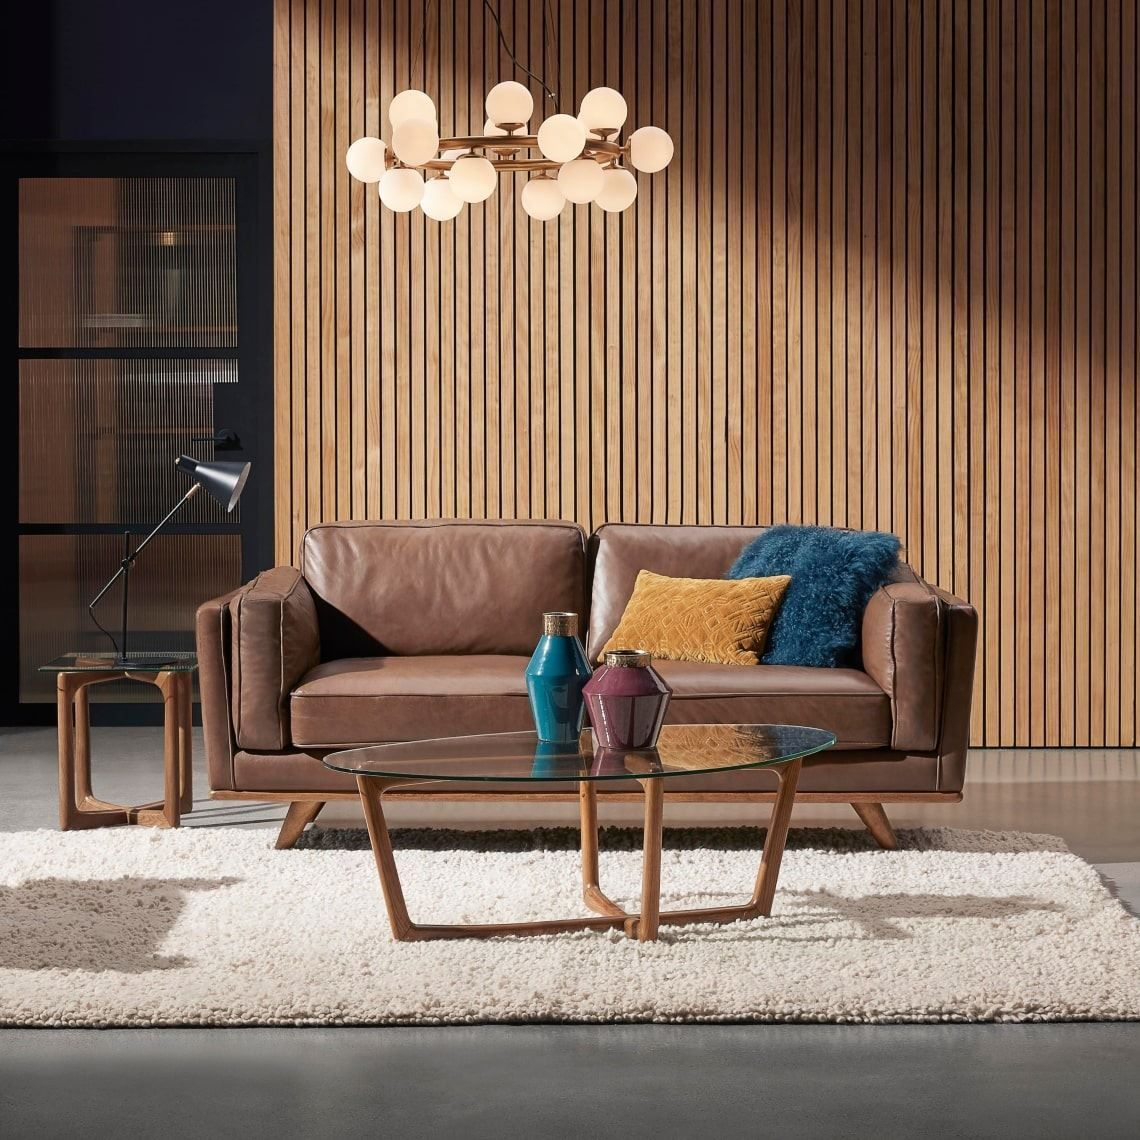 Dahlia 2 5 Seat Leather Sofa Size W 197cm X D 93cm X H 80cm In Natural Leather Foam Fibre Freedom In 2020 Leather Sofa Home Living Room Sofa